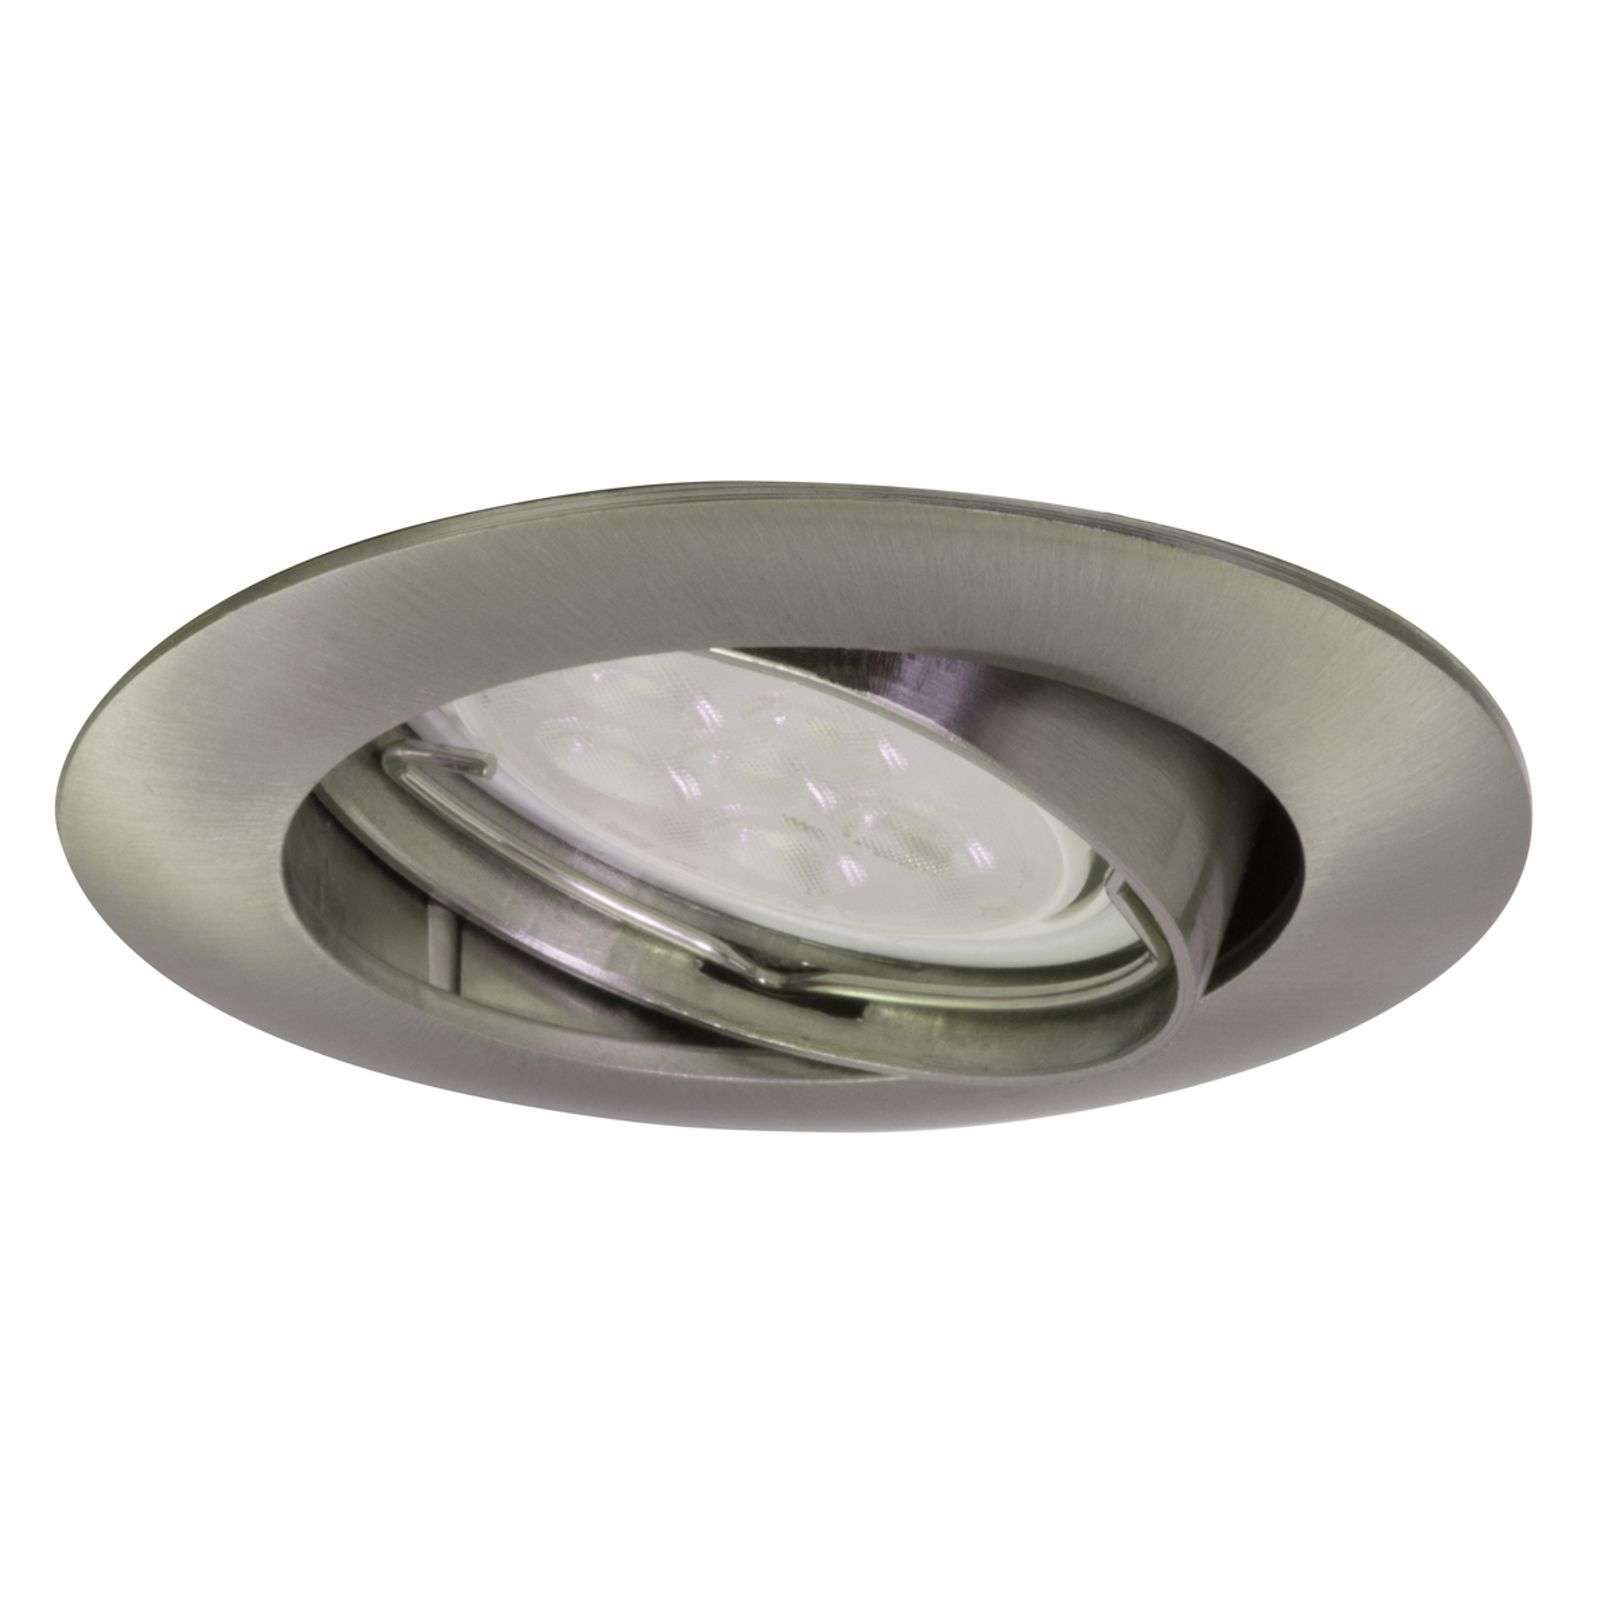 Spot encastrable Downlight DIM Flat, nickel